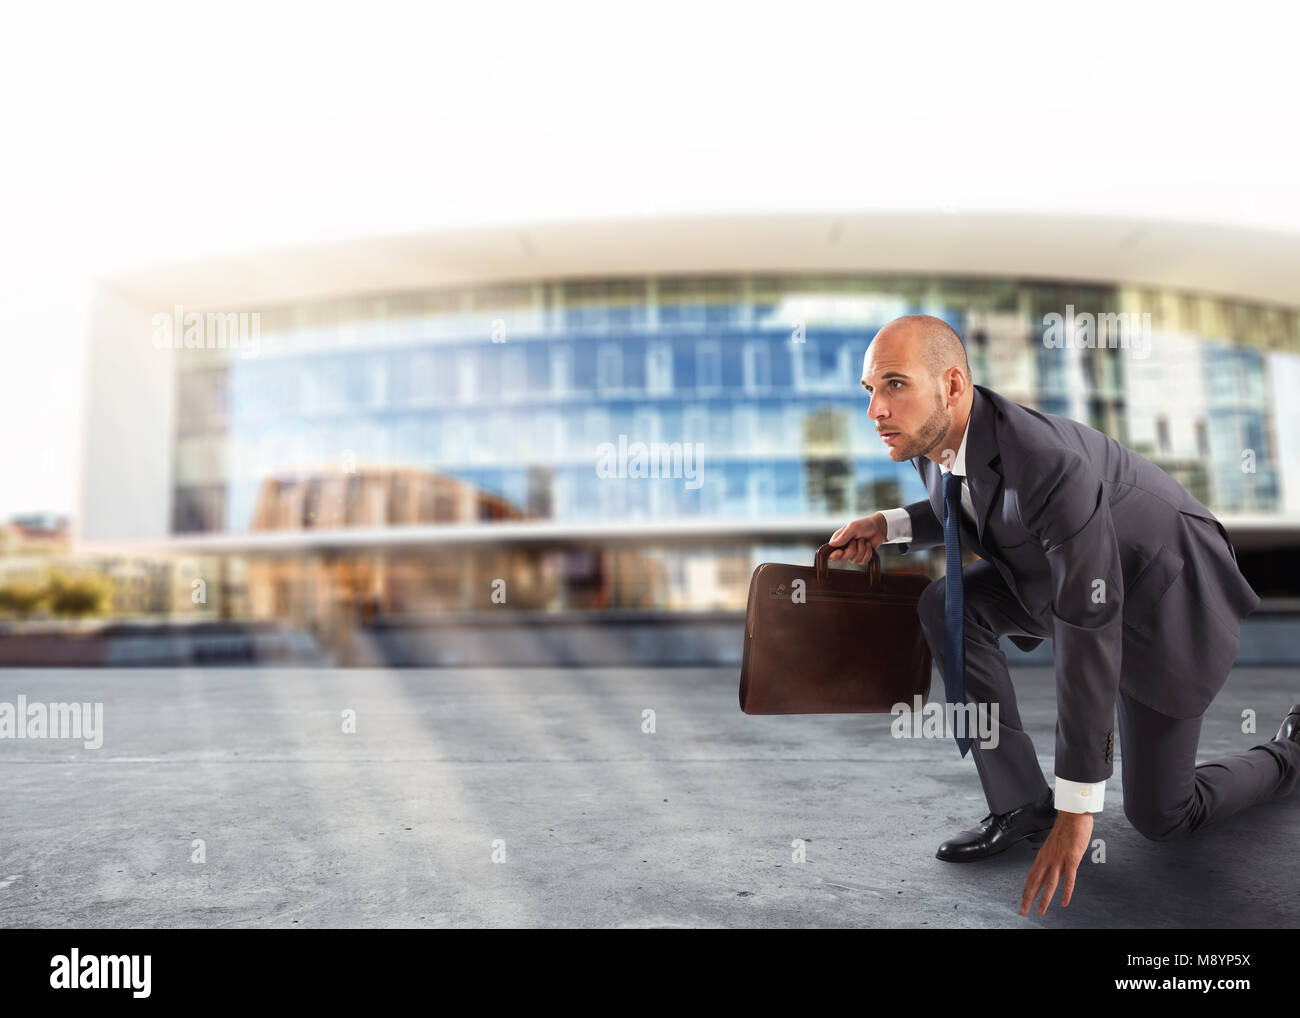 Businessman ready to start. Competition and challenge in business concept - Stock Image